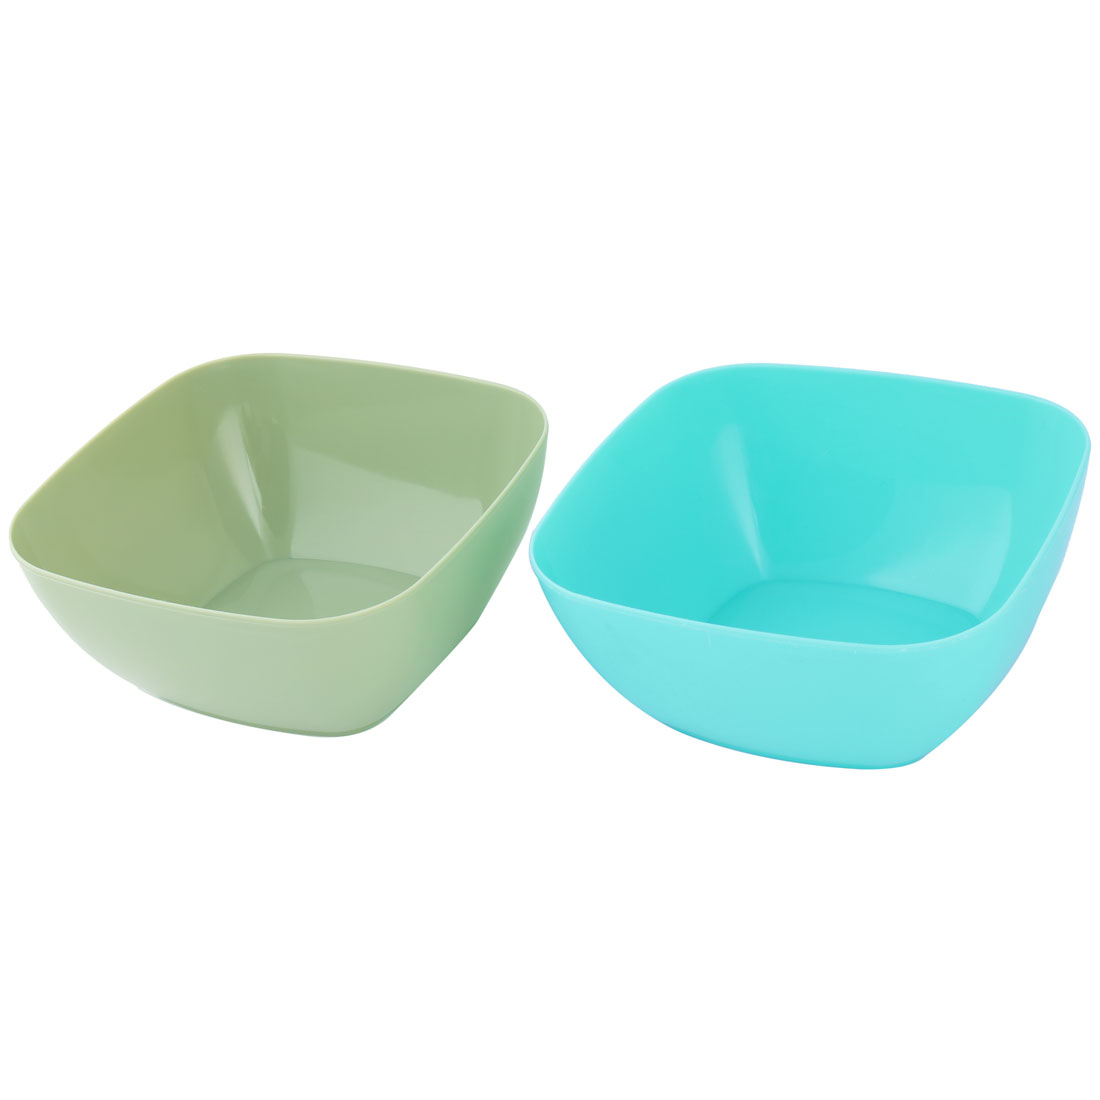 Family Plastic Food Fruit Vegetable Salad Snack Candy Holder Bowl Cyan Pale Green 2pcs